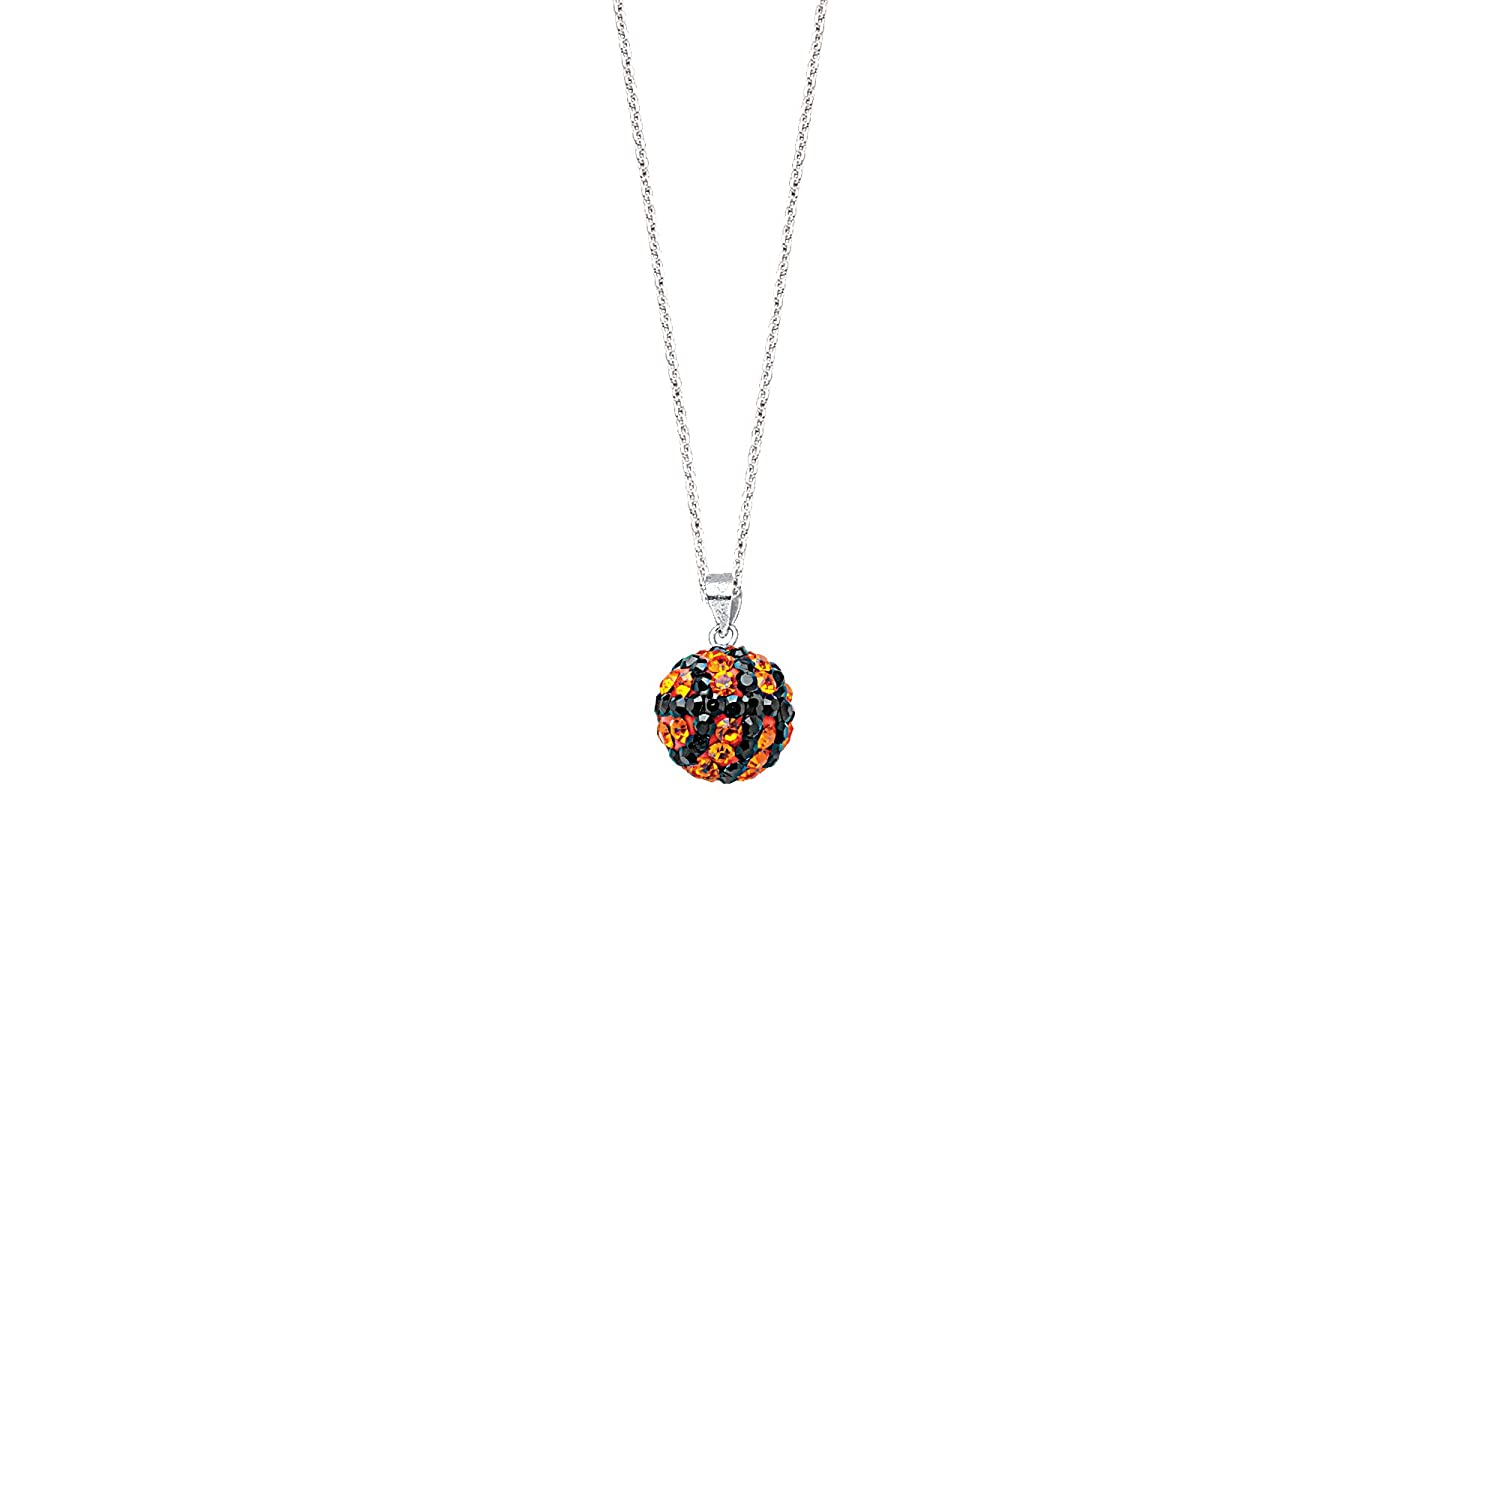 Ss 12Mm Basketball Necklace DiamondJewelryNY Silver Pendant